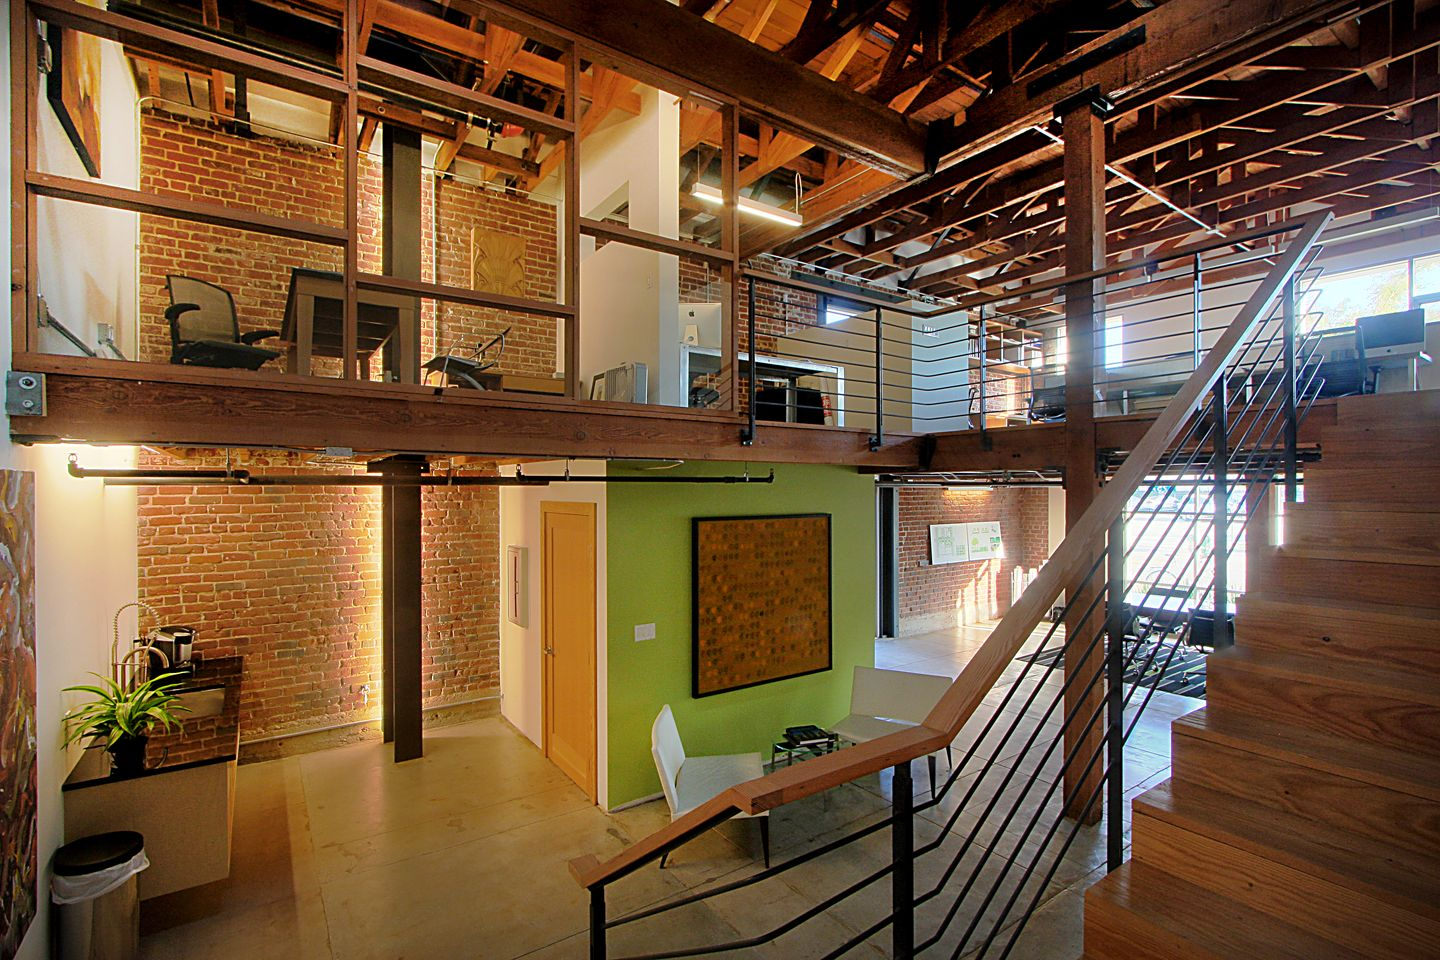 Brick, Wood, Green Wall : Design ideas : Pinterest : Office spaces, Creative office space and ...